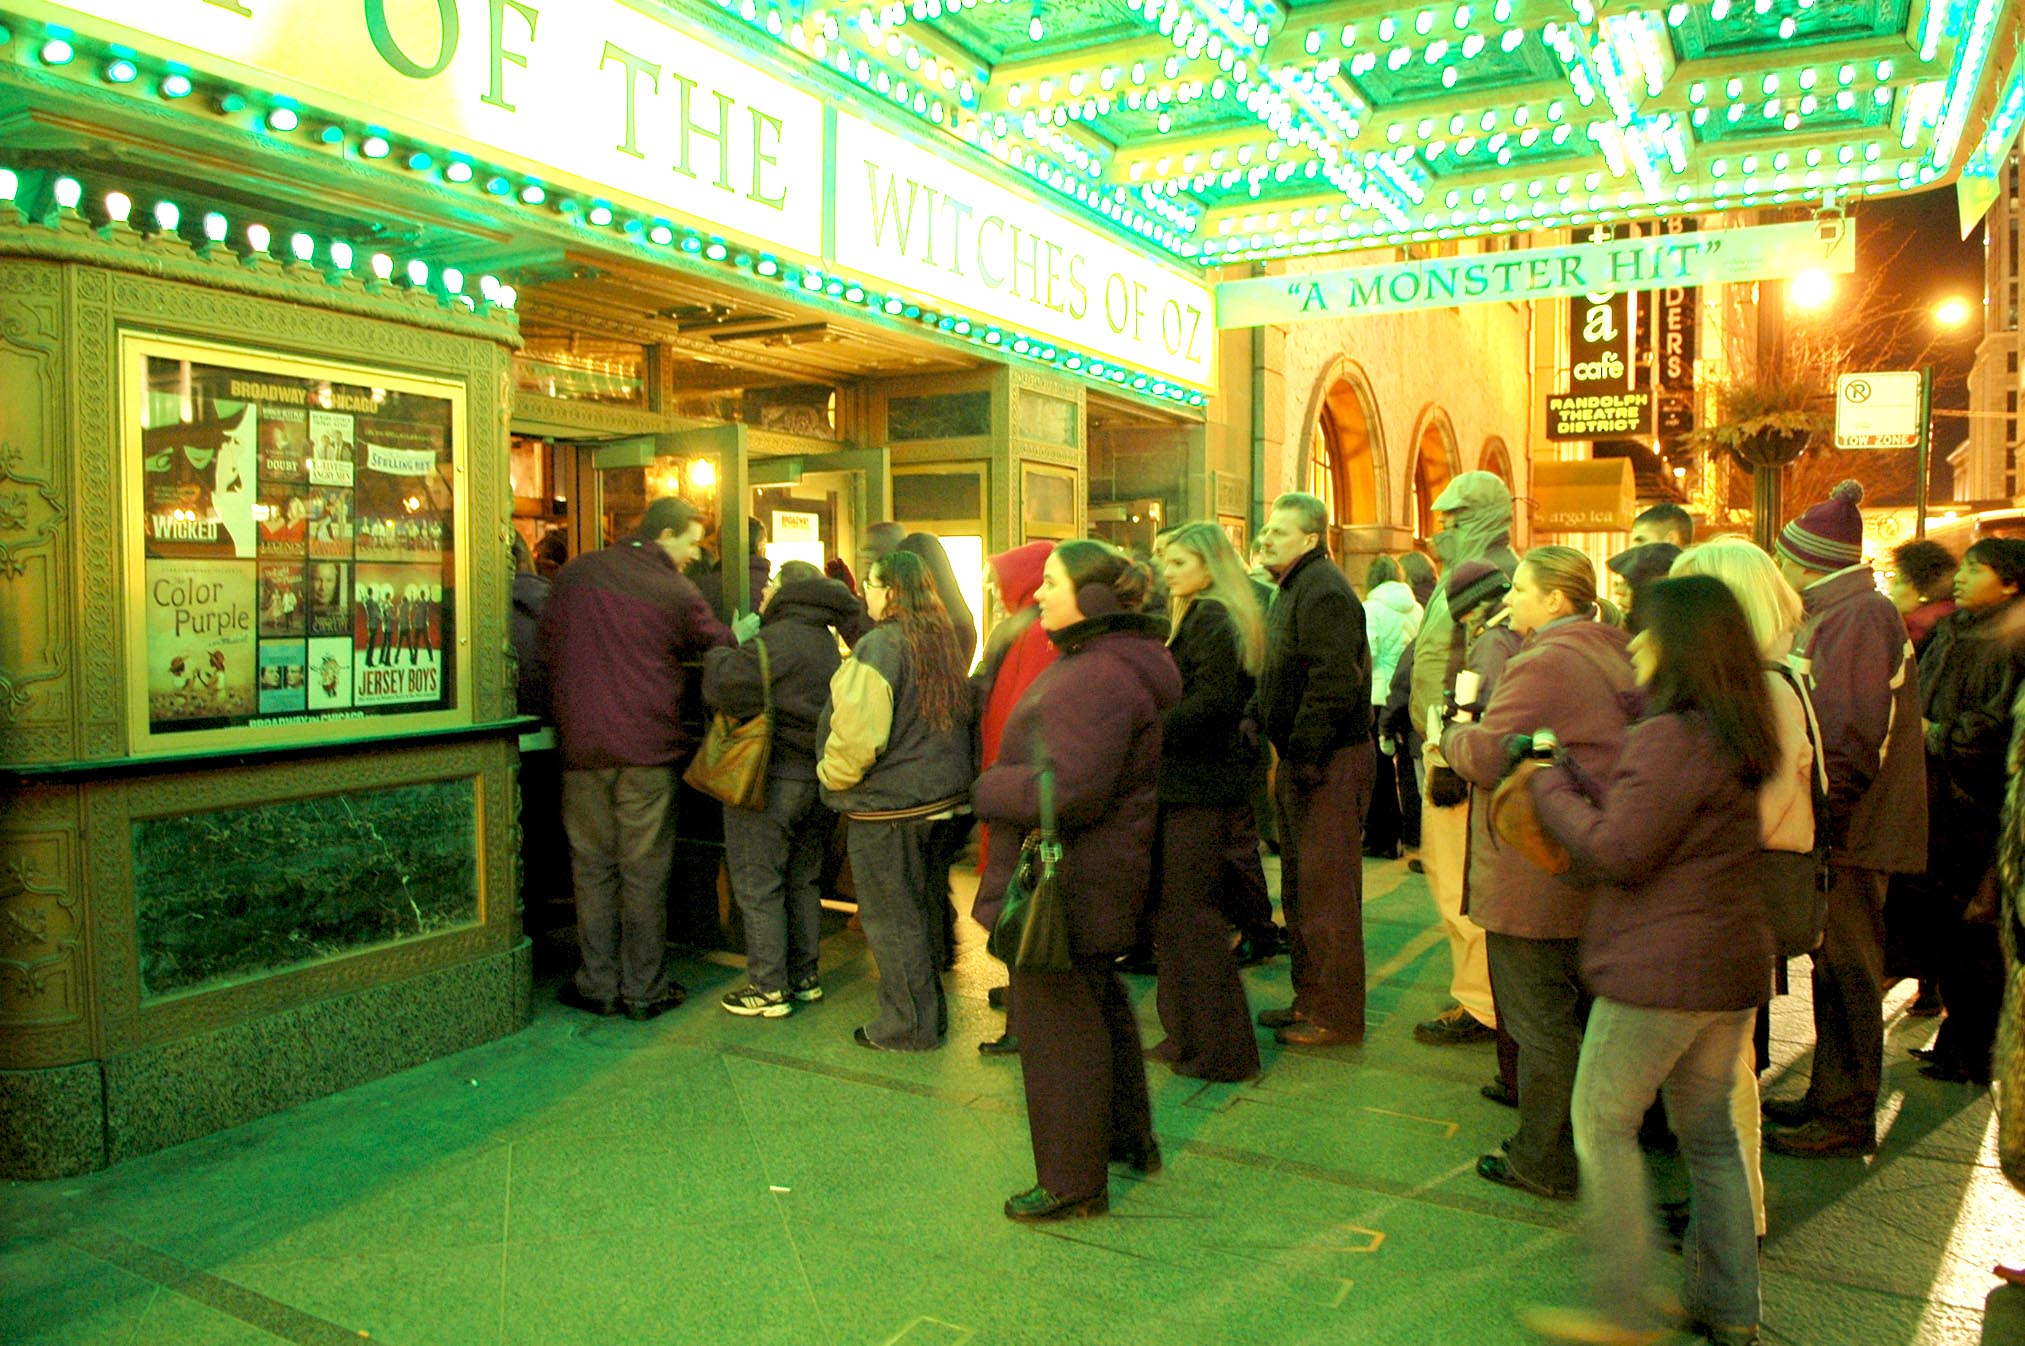 Ticketholders for Wicked, a Broadway in Chicago production, line up outside the Oriental Theatre, 24 W. Randolph St.